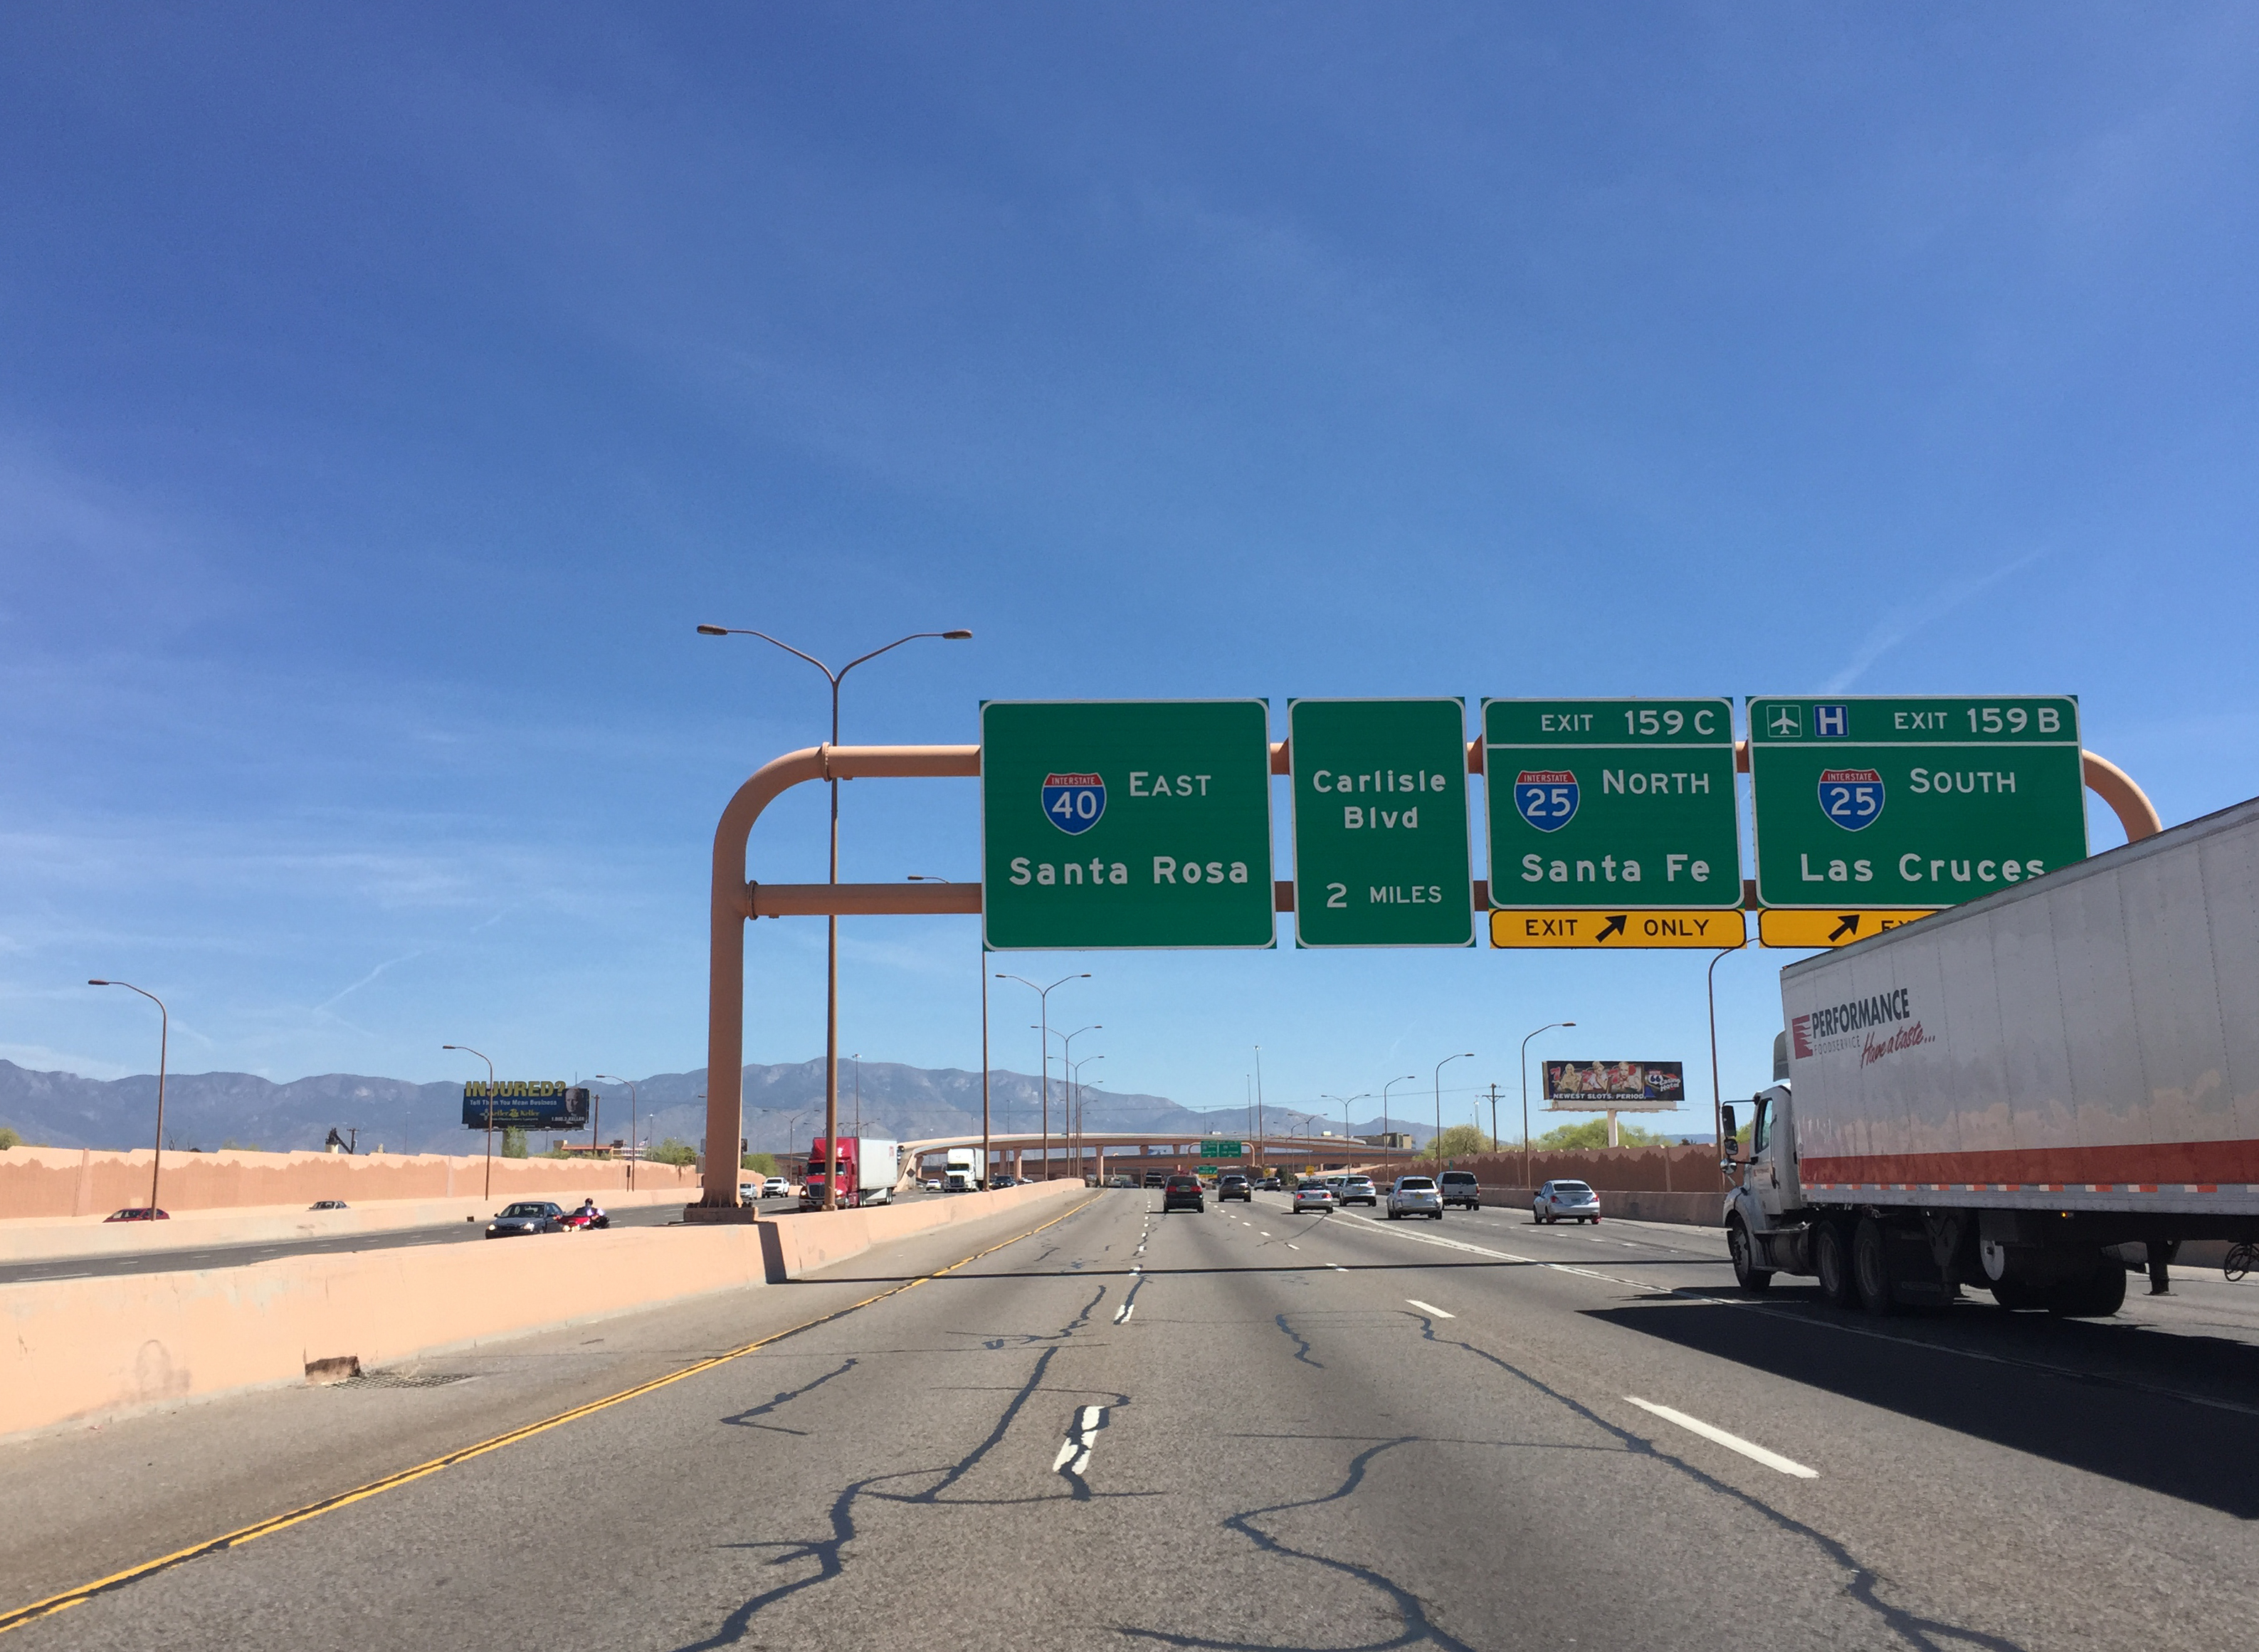 Albuquerque To Santa Fe >> File:2016-03-21 13 09 01 View east along Interstate 40 at Exit 159 (Interstate 25, Santa Fe, Las ...